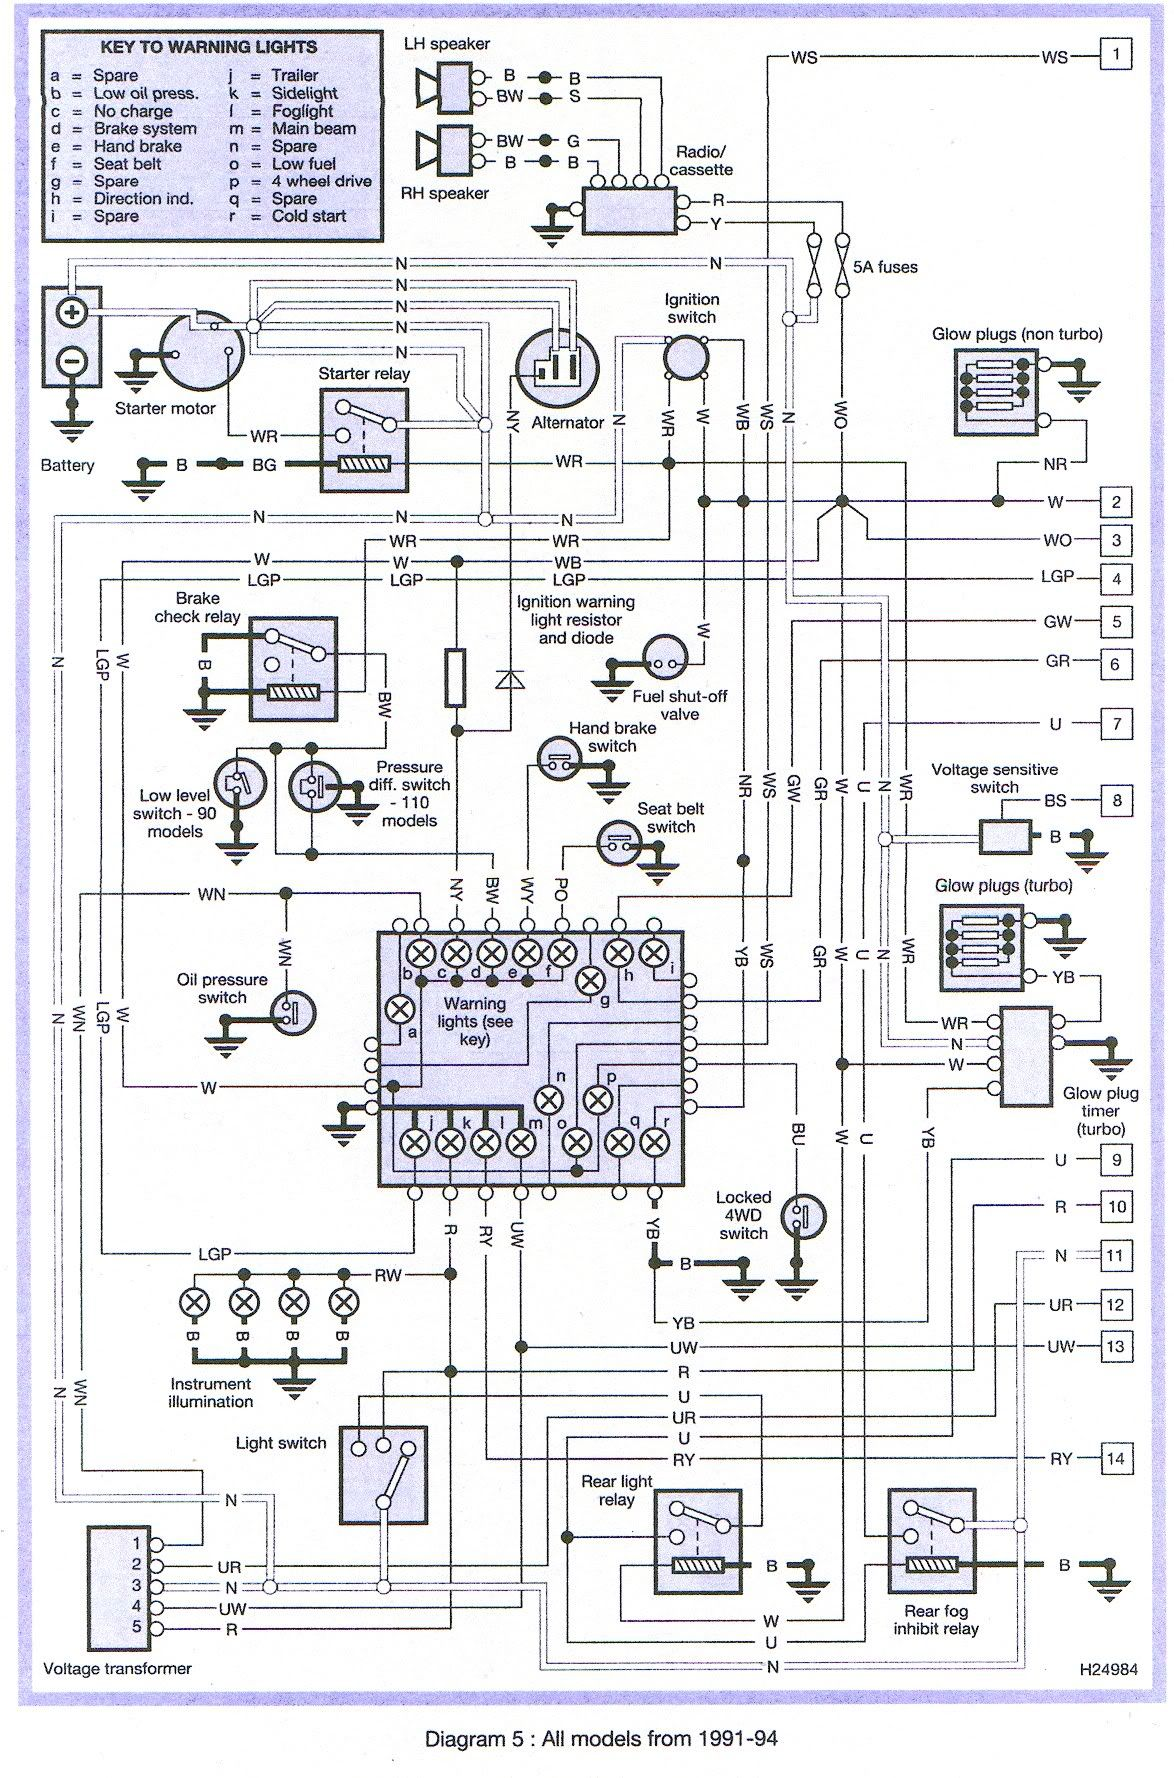 medium resolution of manual electrical wiring and circuits diagrams body repair manual rover 75 wiring diagram and body electrical system